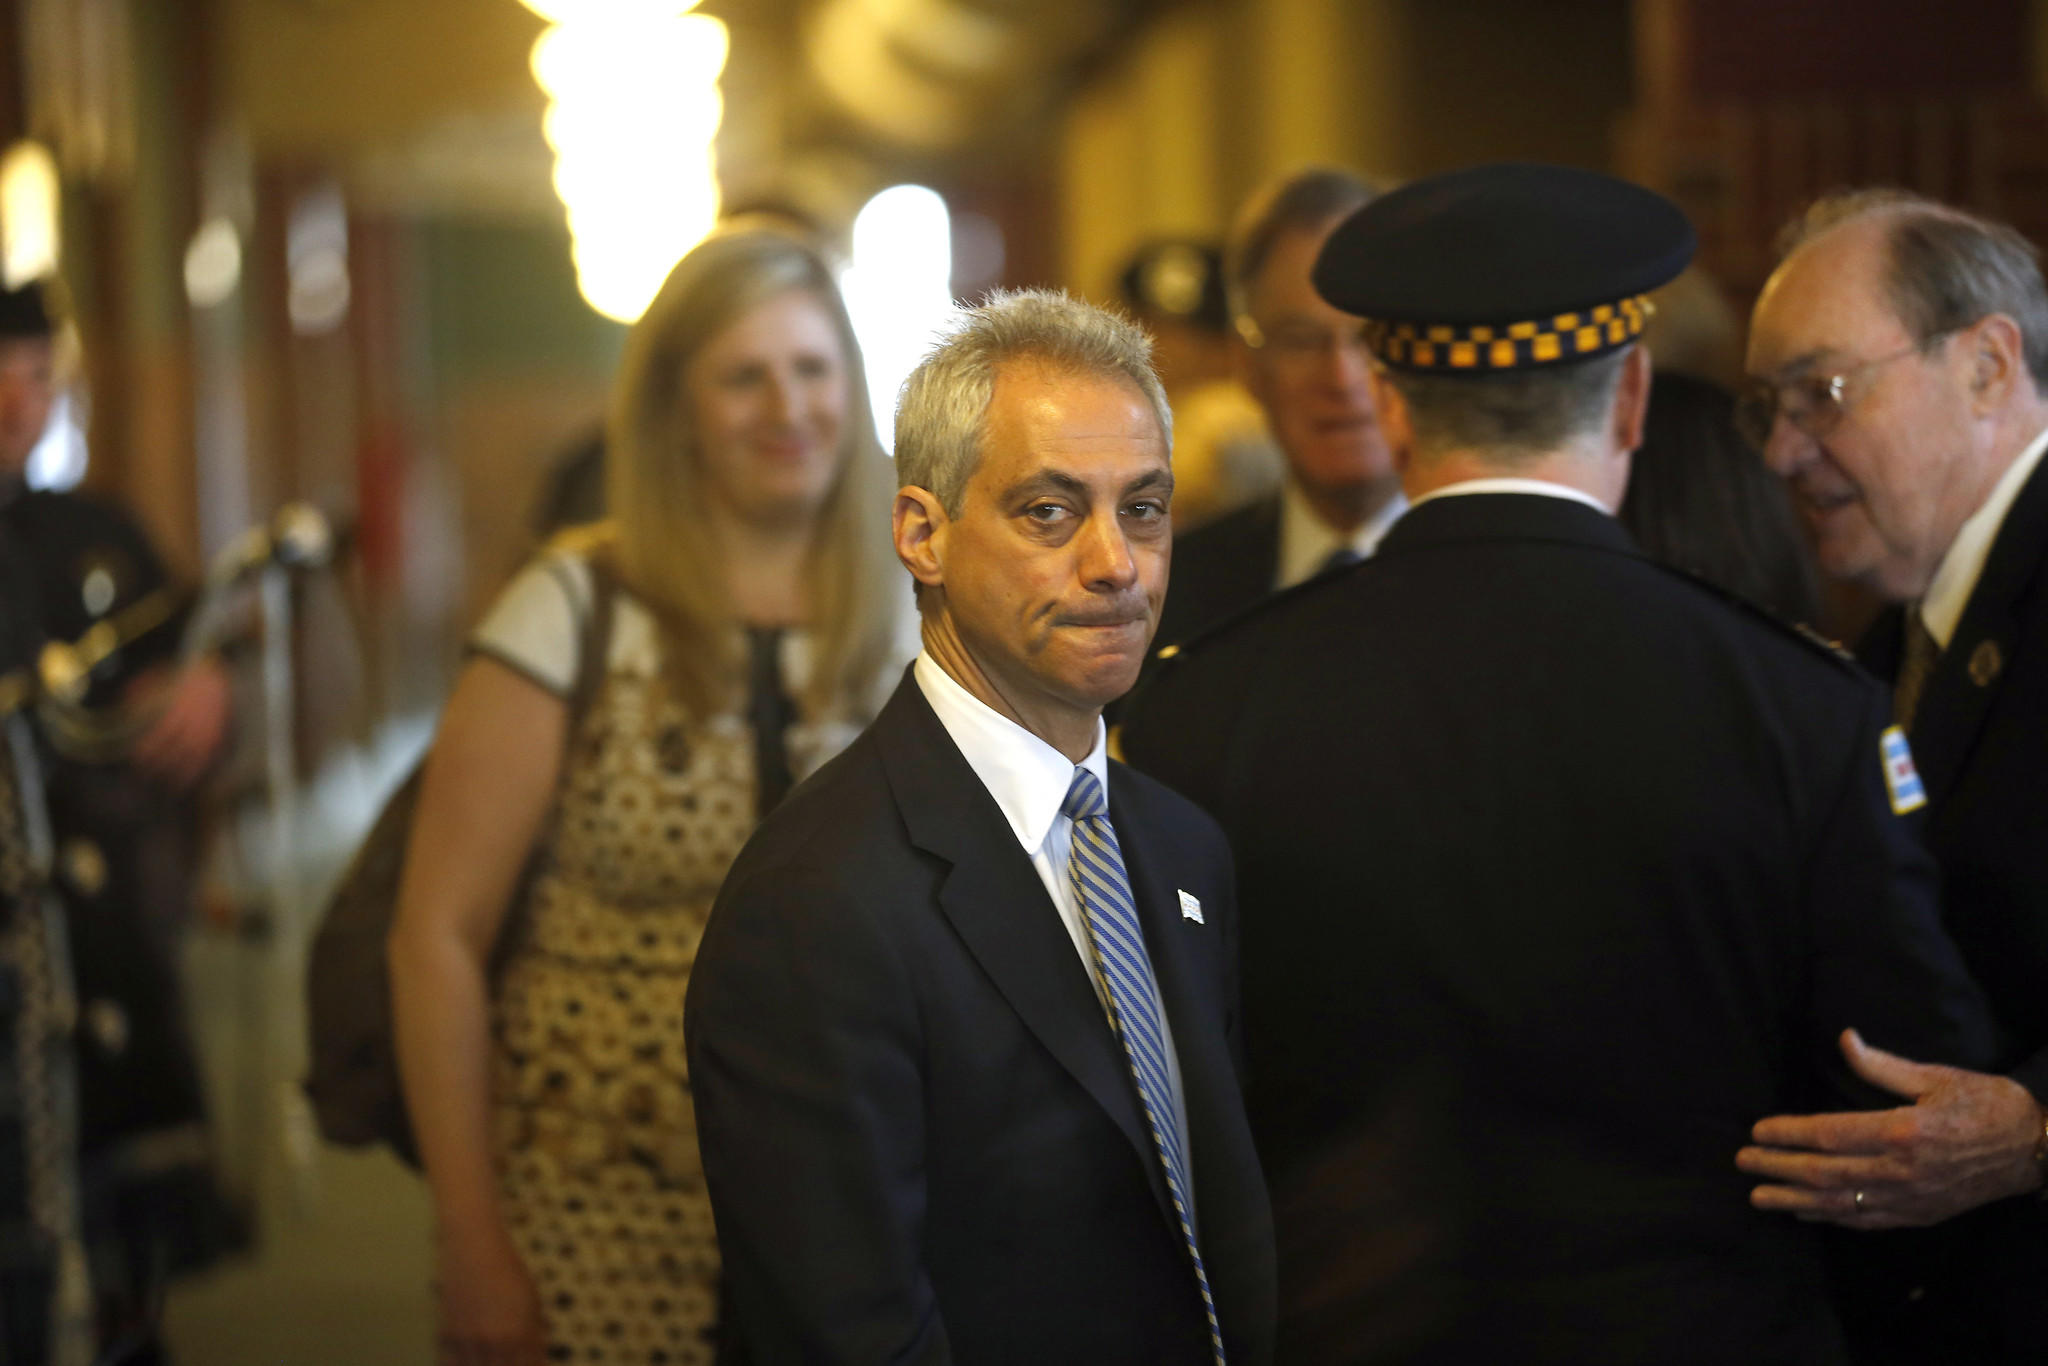 Mayor Rahm Emanuel attends the Chicago police department's graduation and promotion ceremony.